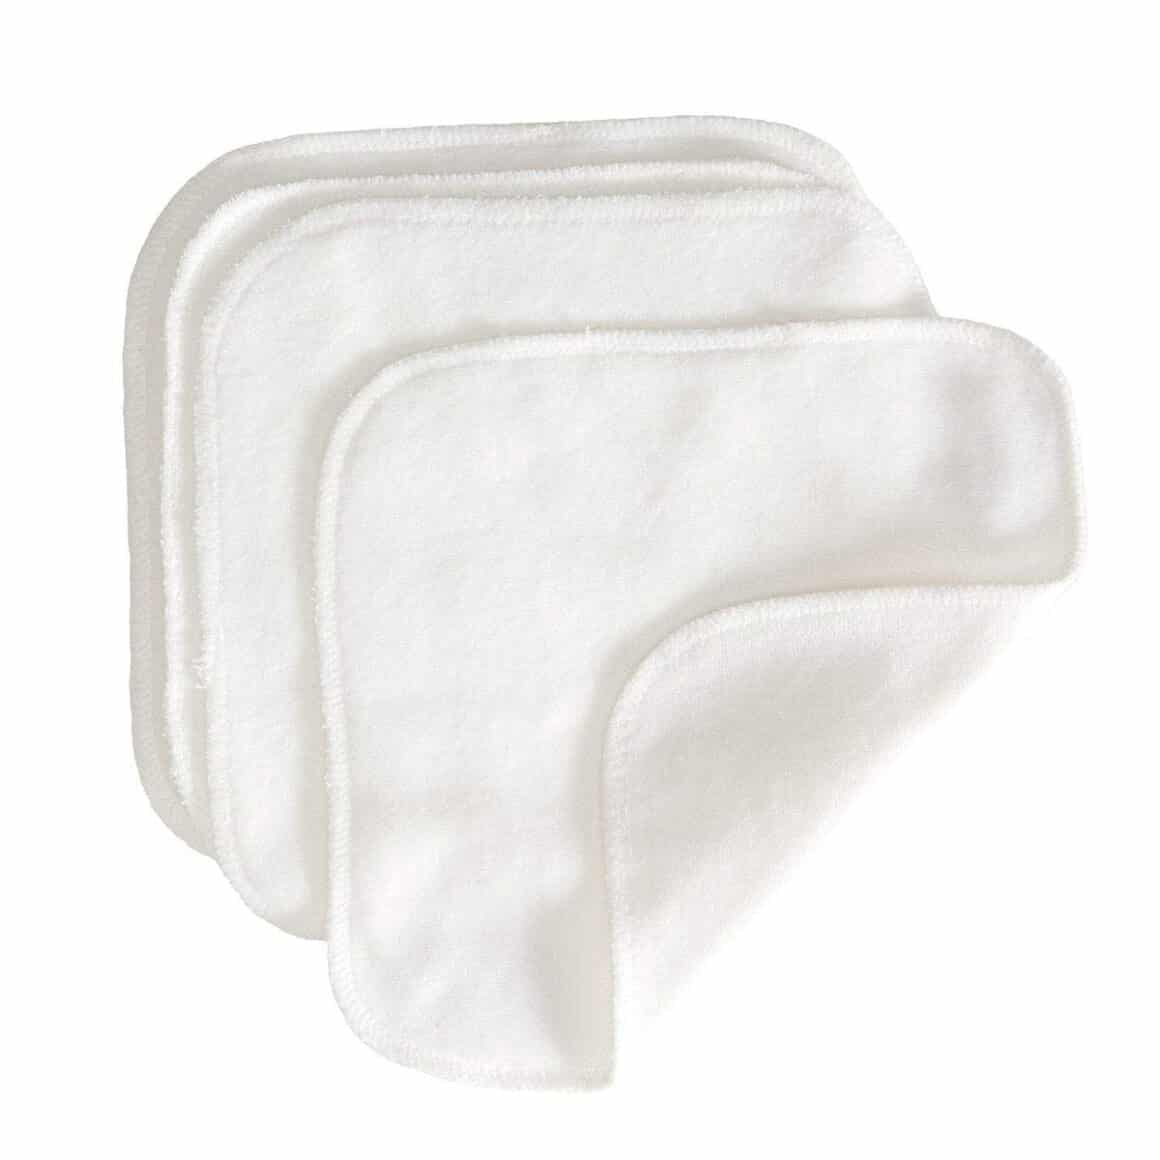 GroVia Cloth Wipes gentle and plush, great face cloths for oil cleansing and removing makeup